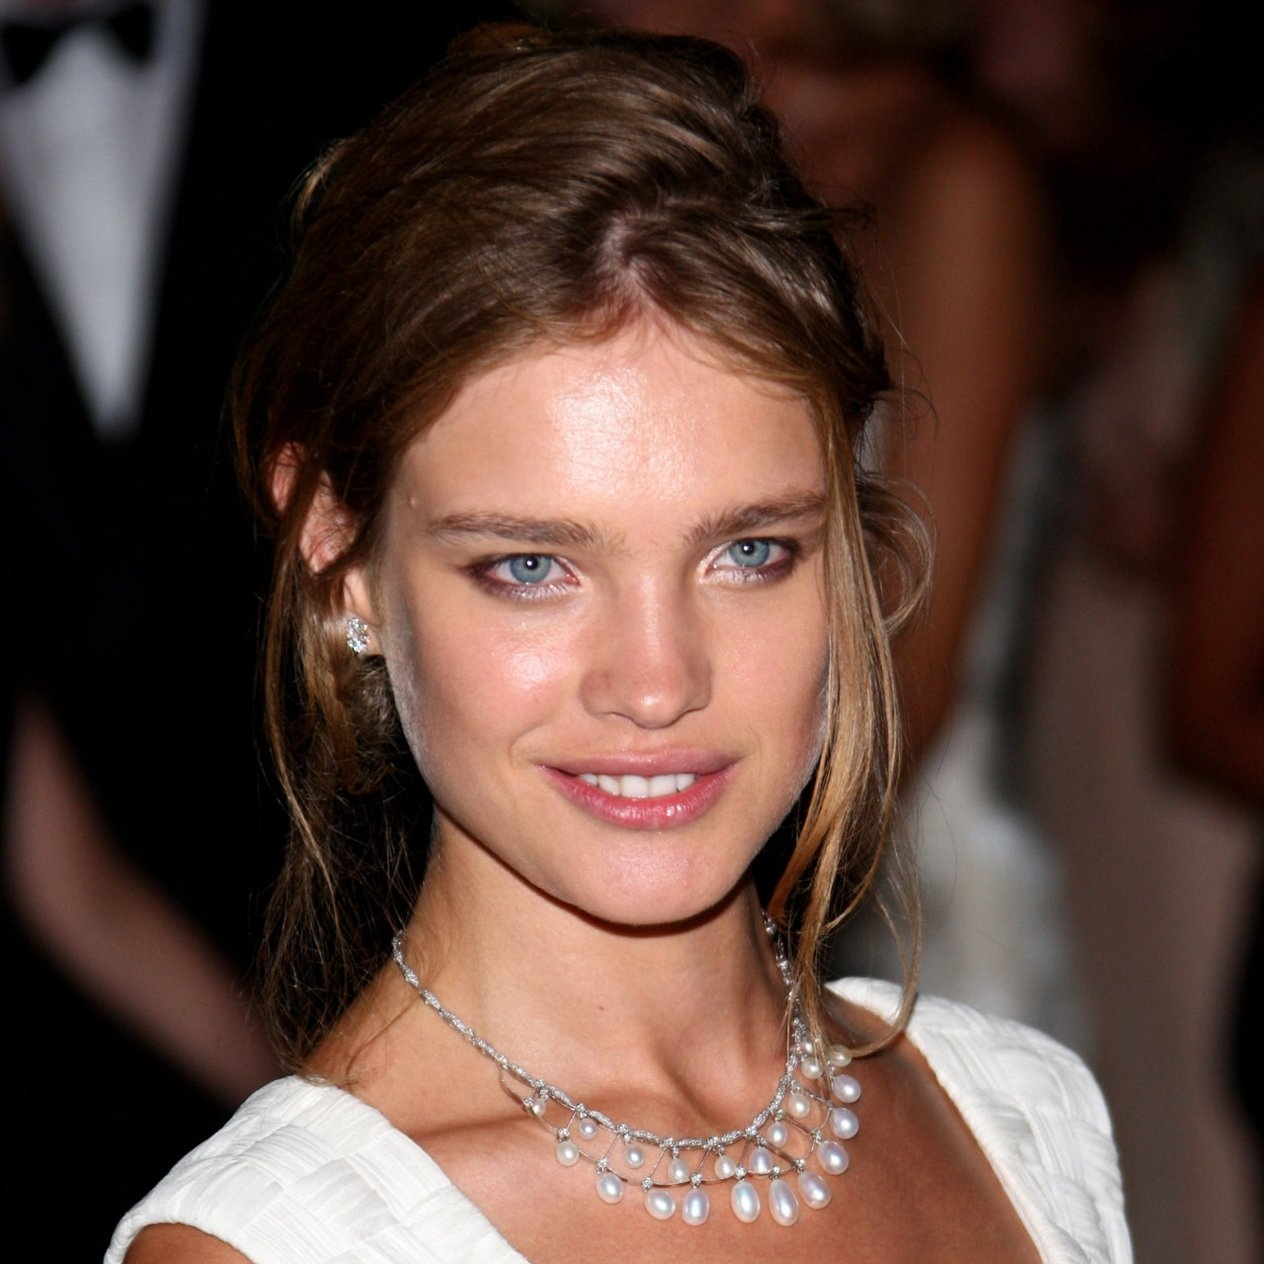 Hot Top Model Natalia Vodianova - Natalia Vodianova Net Worth, Pics, Wallpapers, Career and Biography